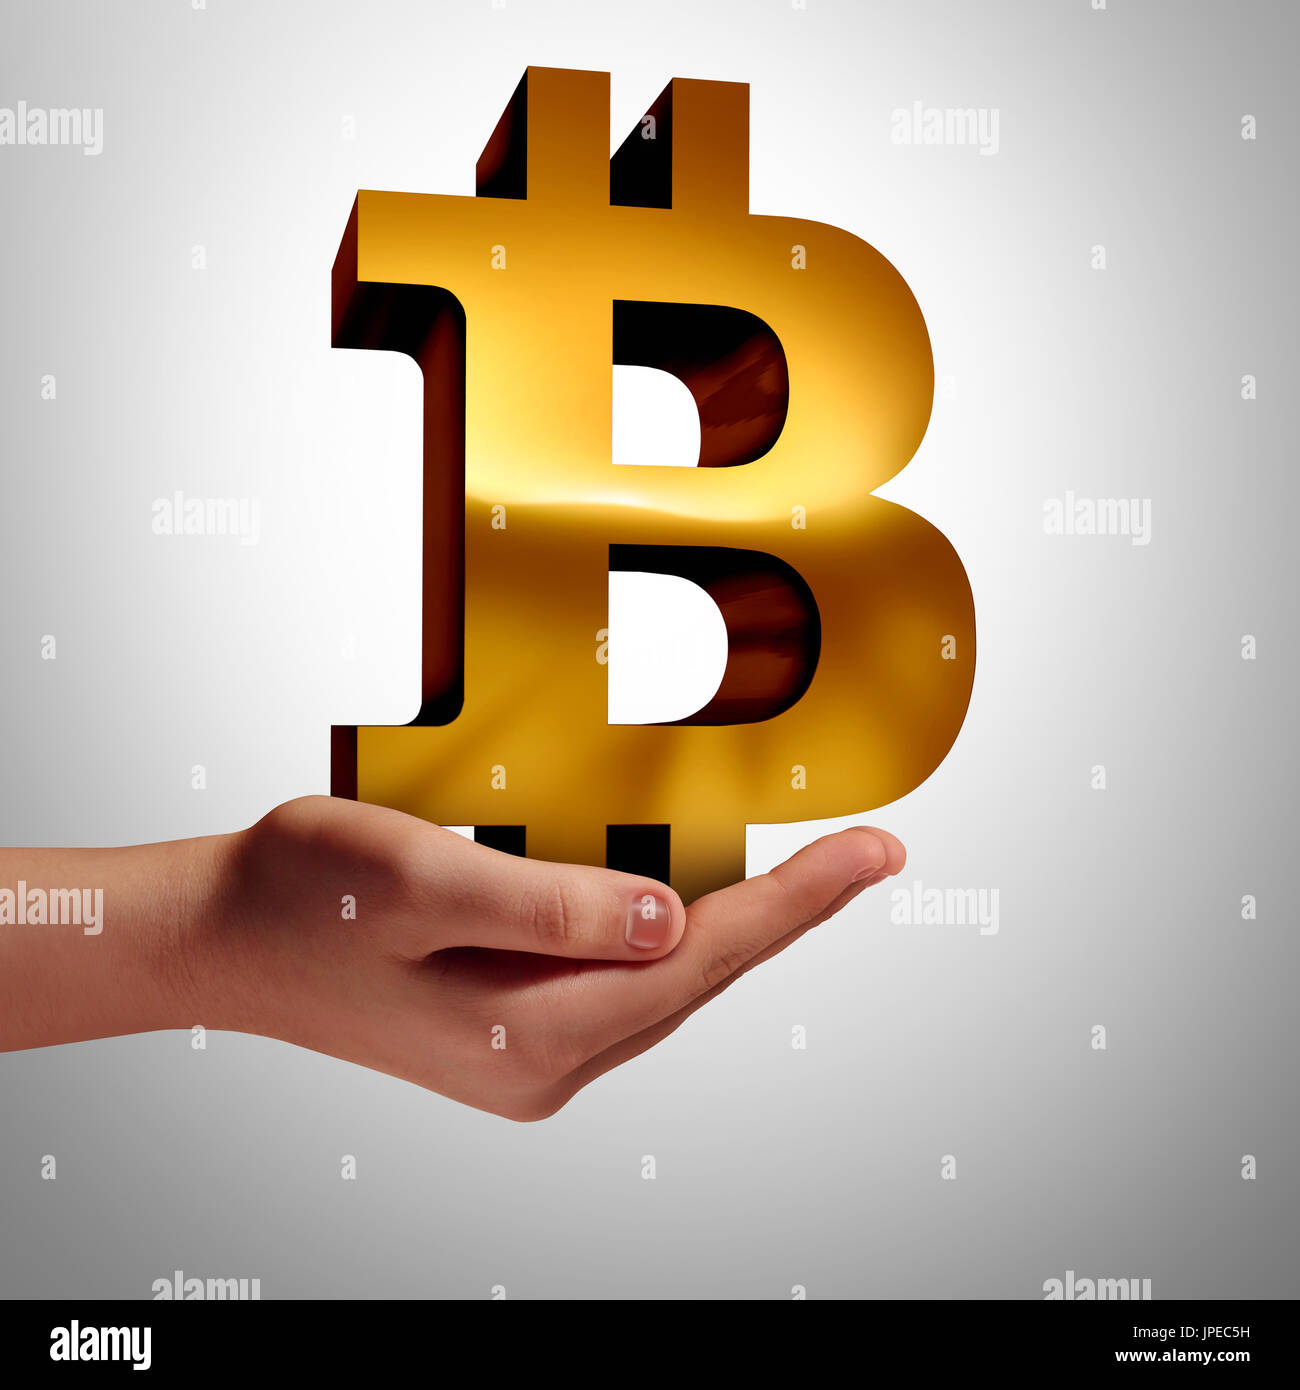 Bitcoin currency and symbol of cryptocurrency digital internet bitcoin currency and symbol of cryptocurrency digital internet currency economic concept as a human hand holding buycottarizona